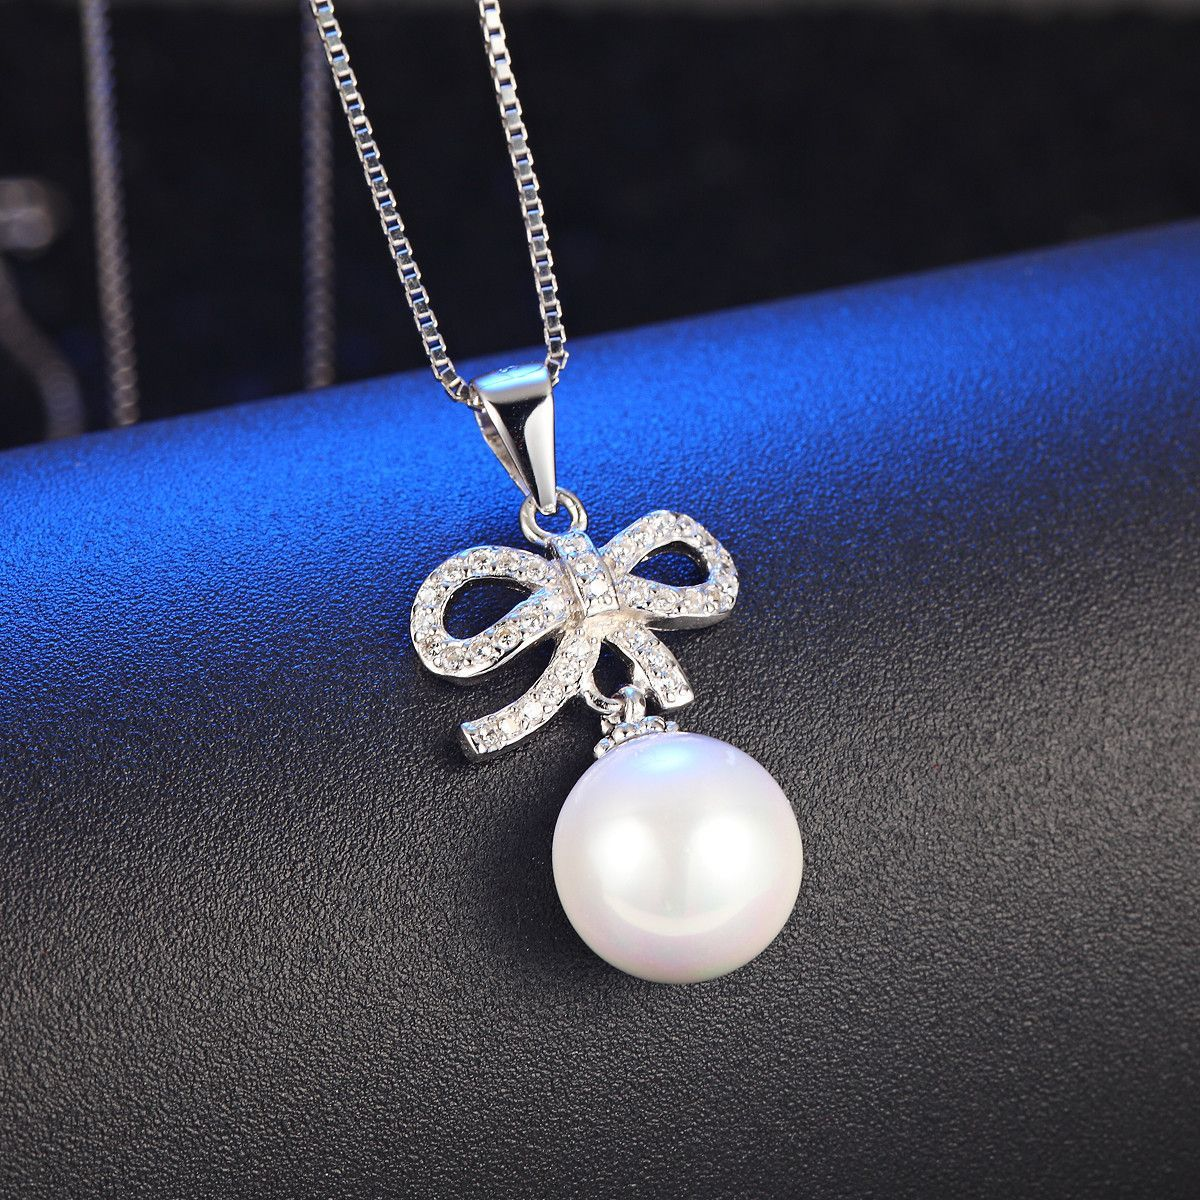 Silver pendant with bow and drop pearl